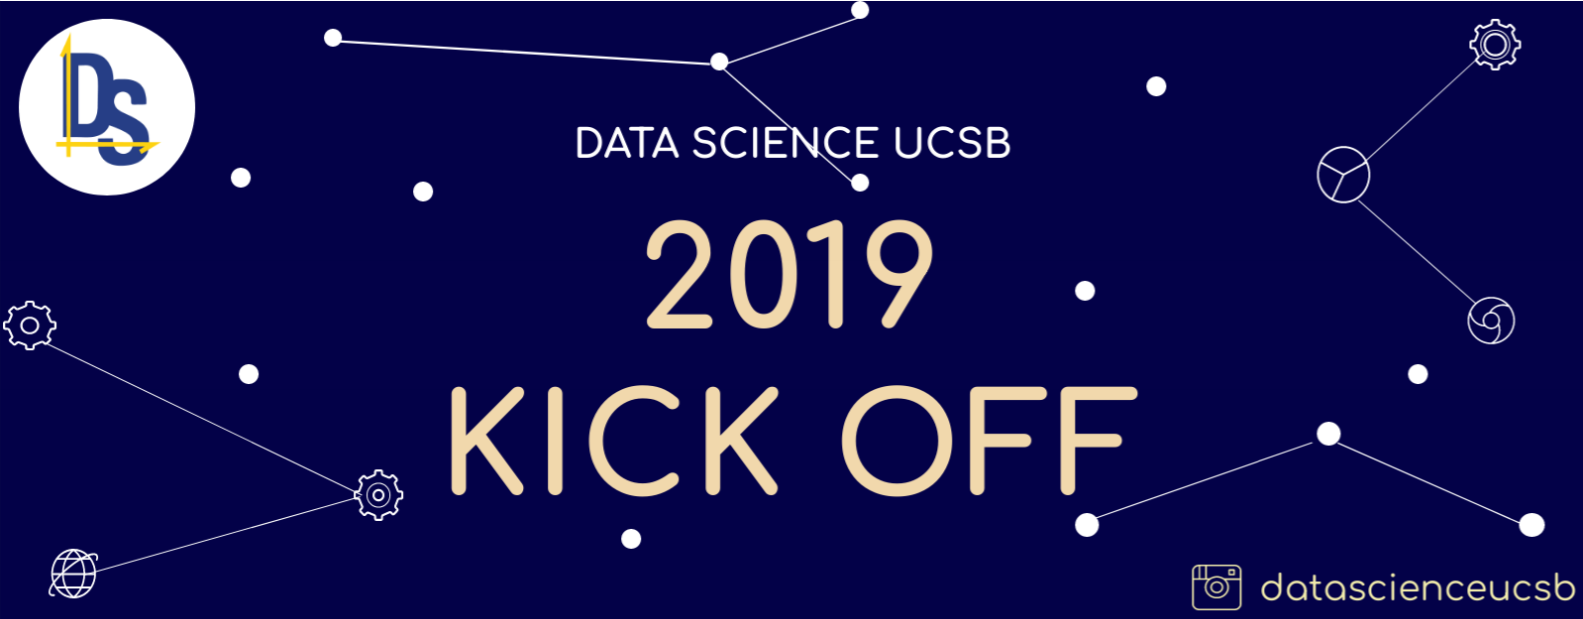 2019 Data Science UCSB Kickoff